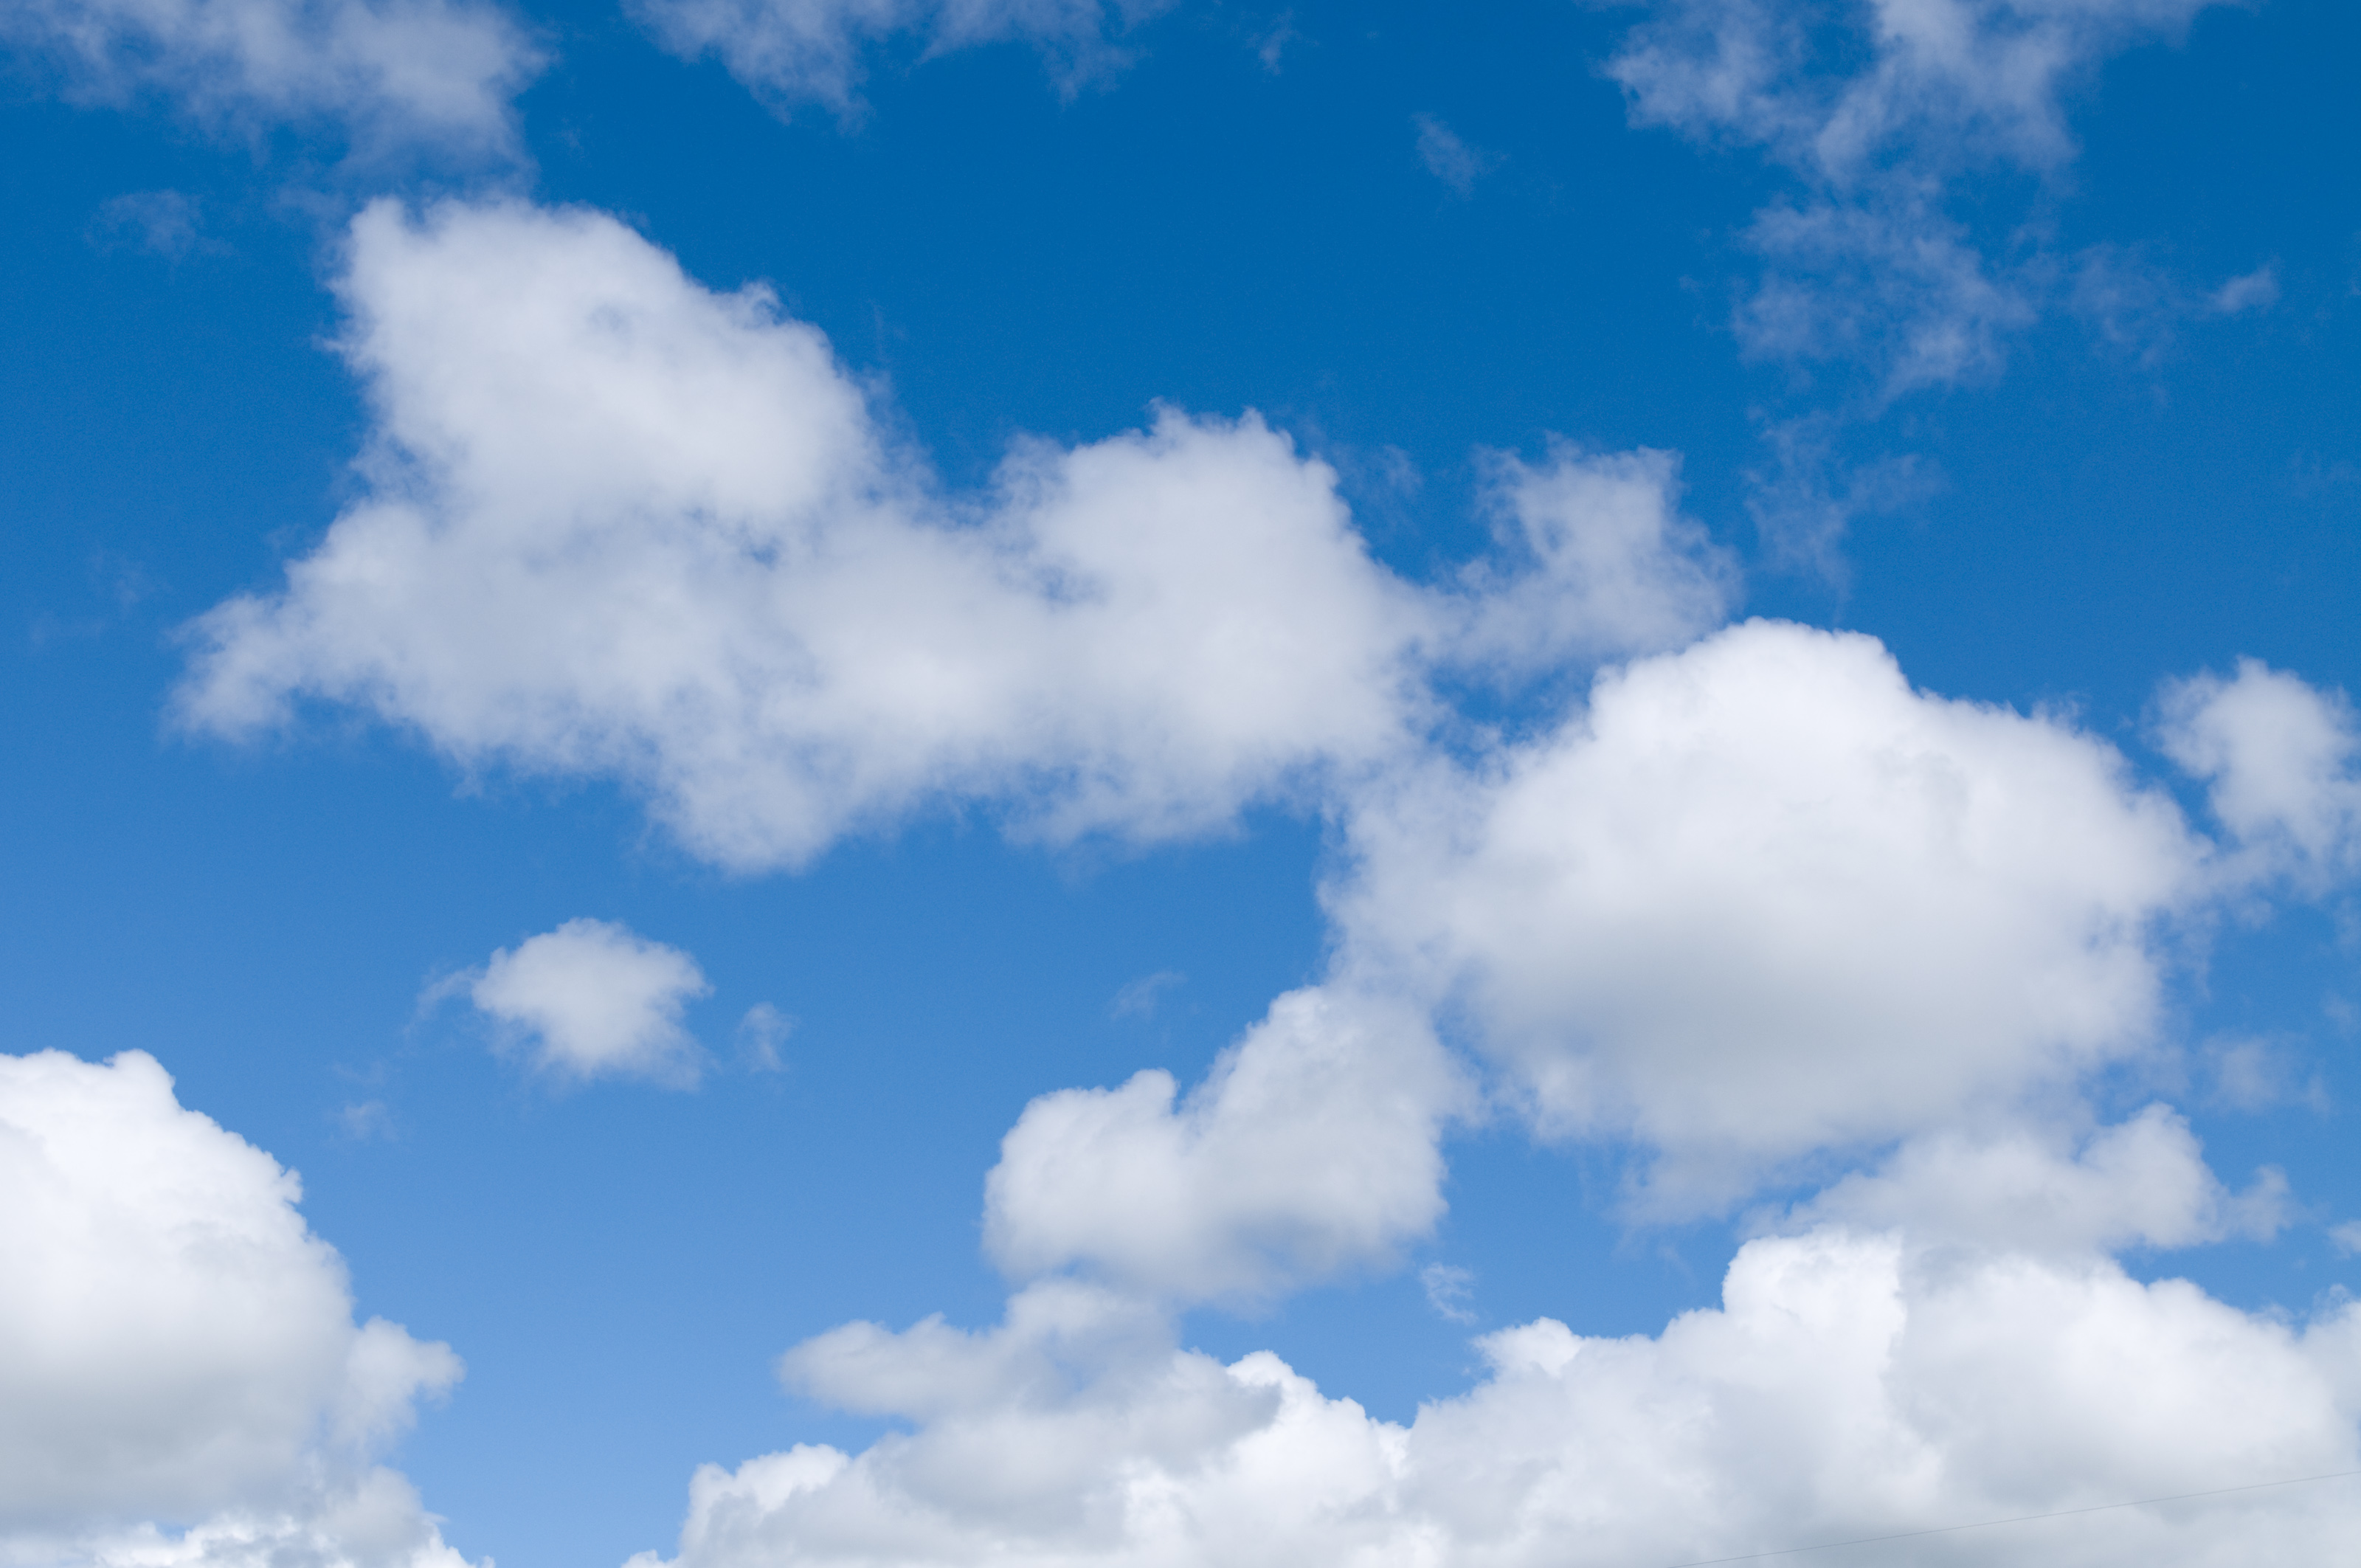 Blue Sky Cloudy Days Pictures 3200x2125